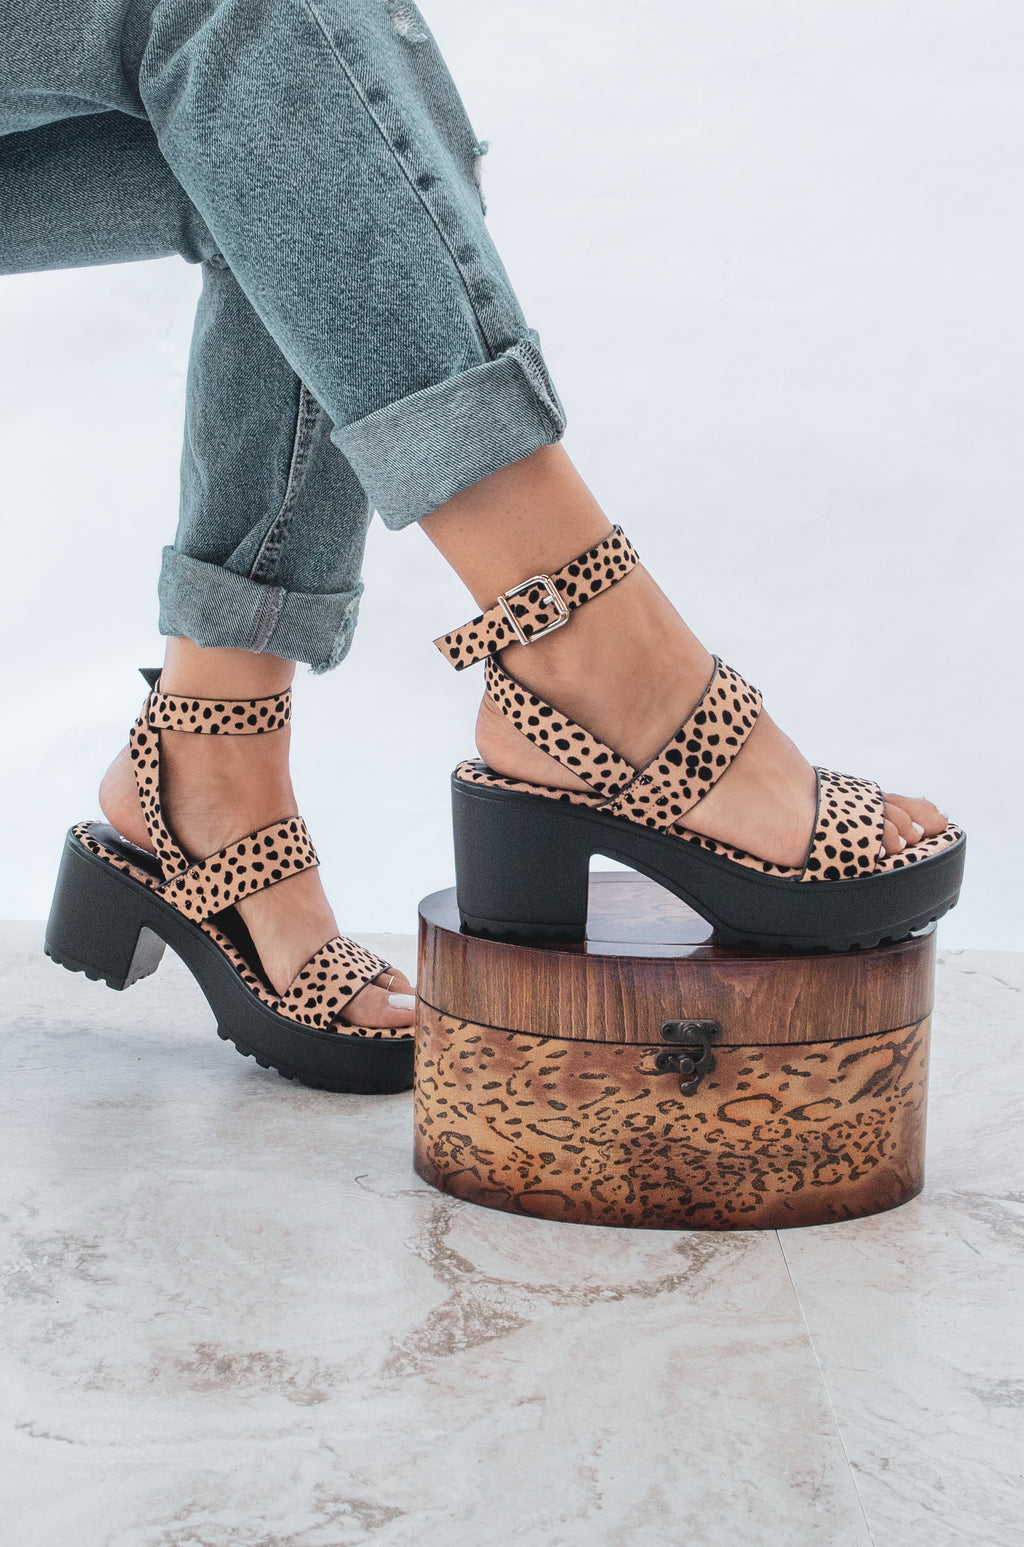 Born Sinner - Leopard Lug Sole Platforms